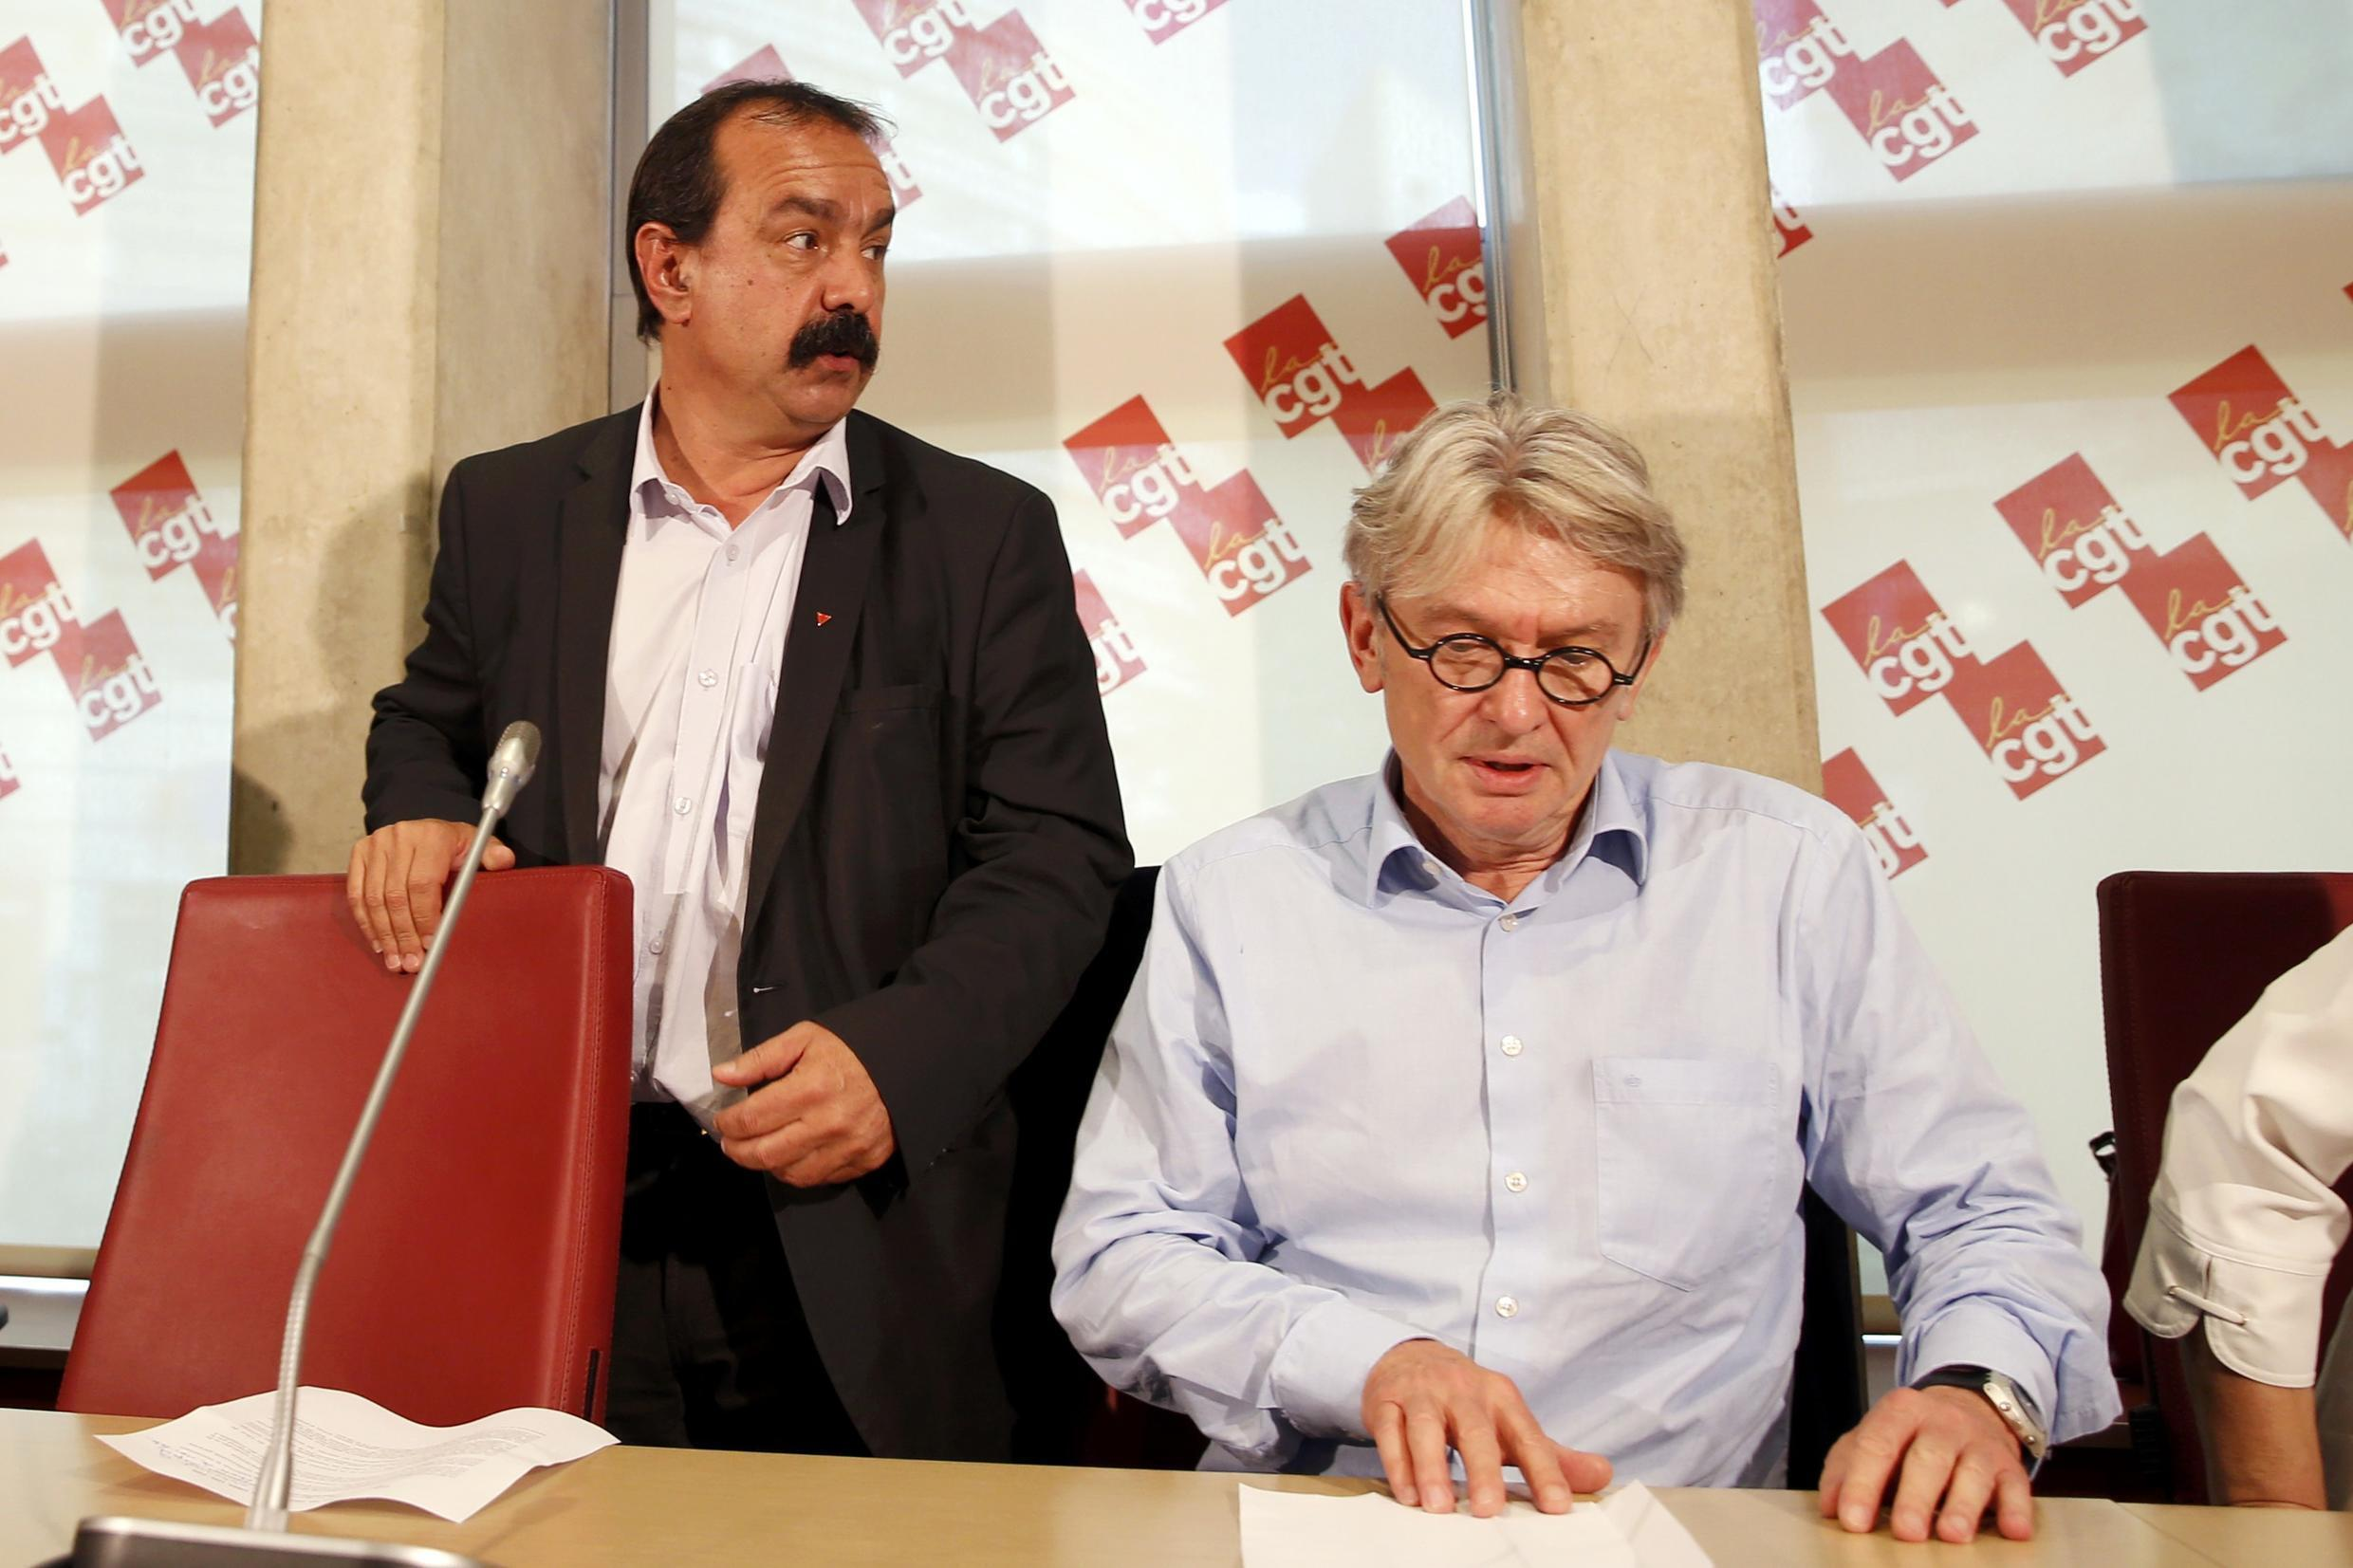 CGTleader Philippe Martinez and Force Ouvrière's Jean-Claude Mailly at a press conference on Wednesday